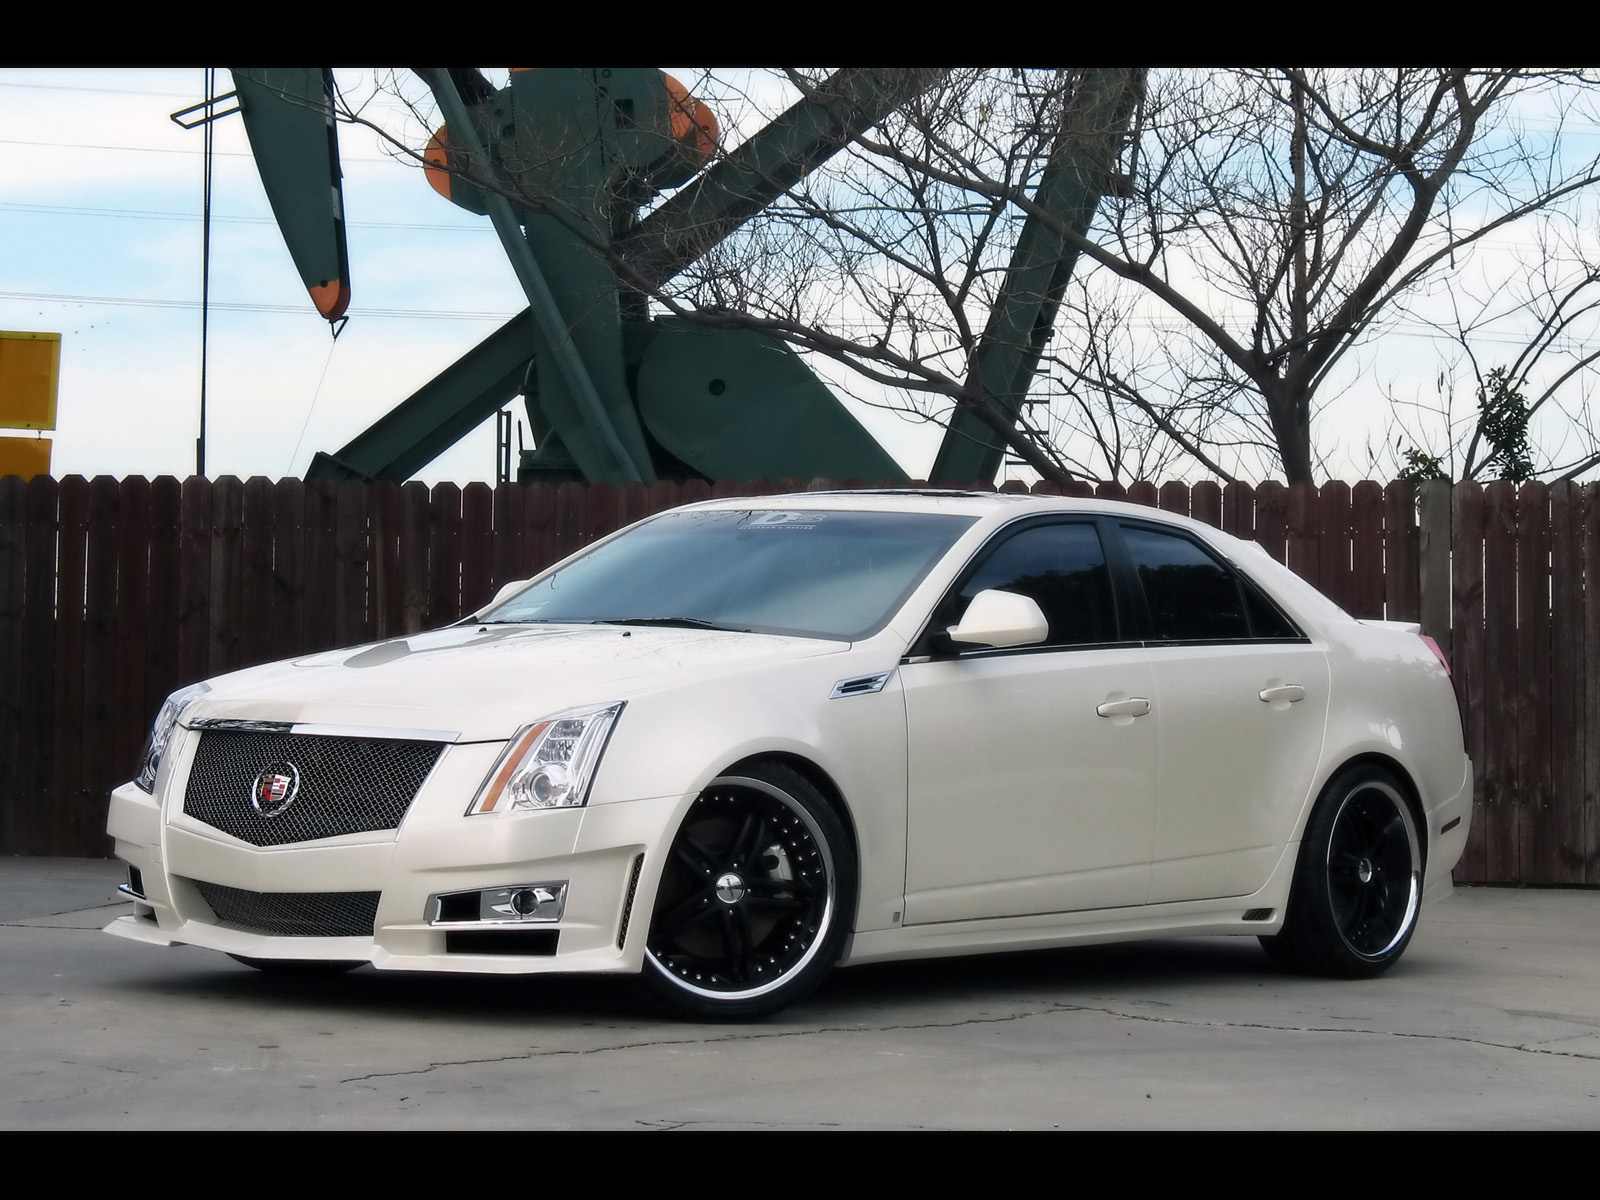 D3 Cadillac Cts Photos Photogallery With 21 Pics